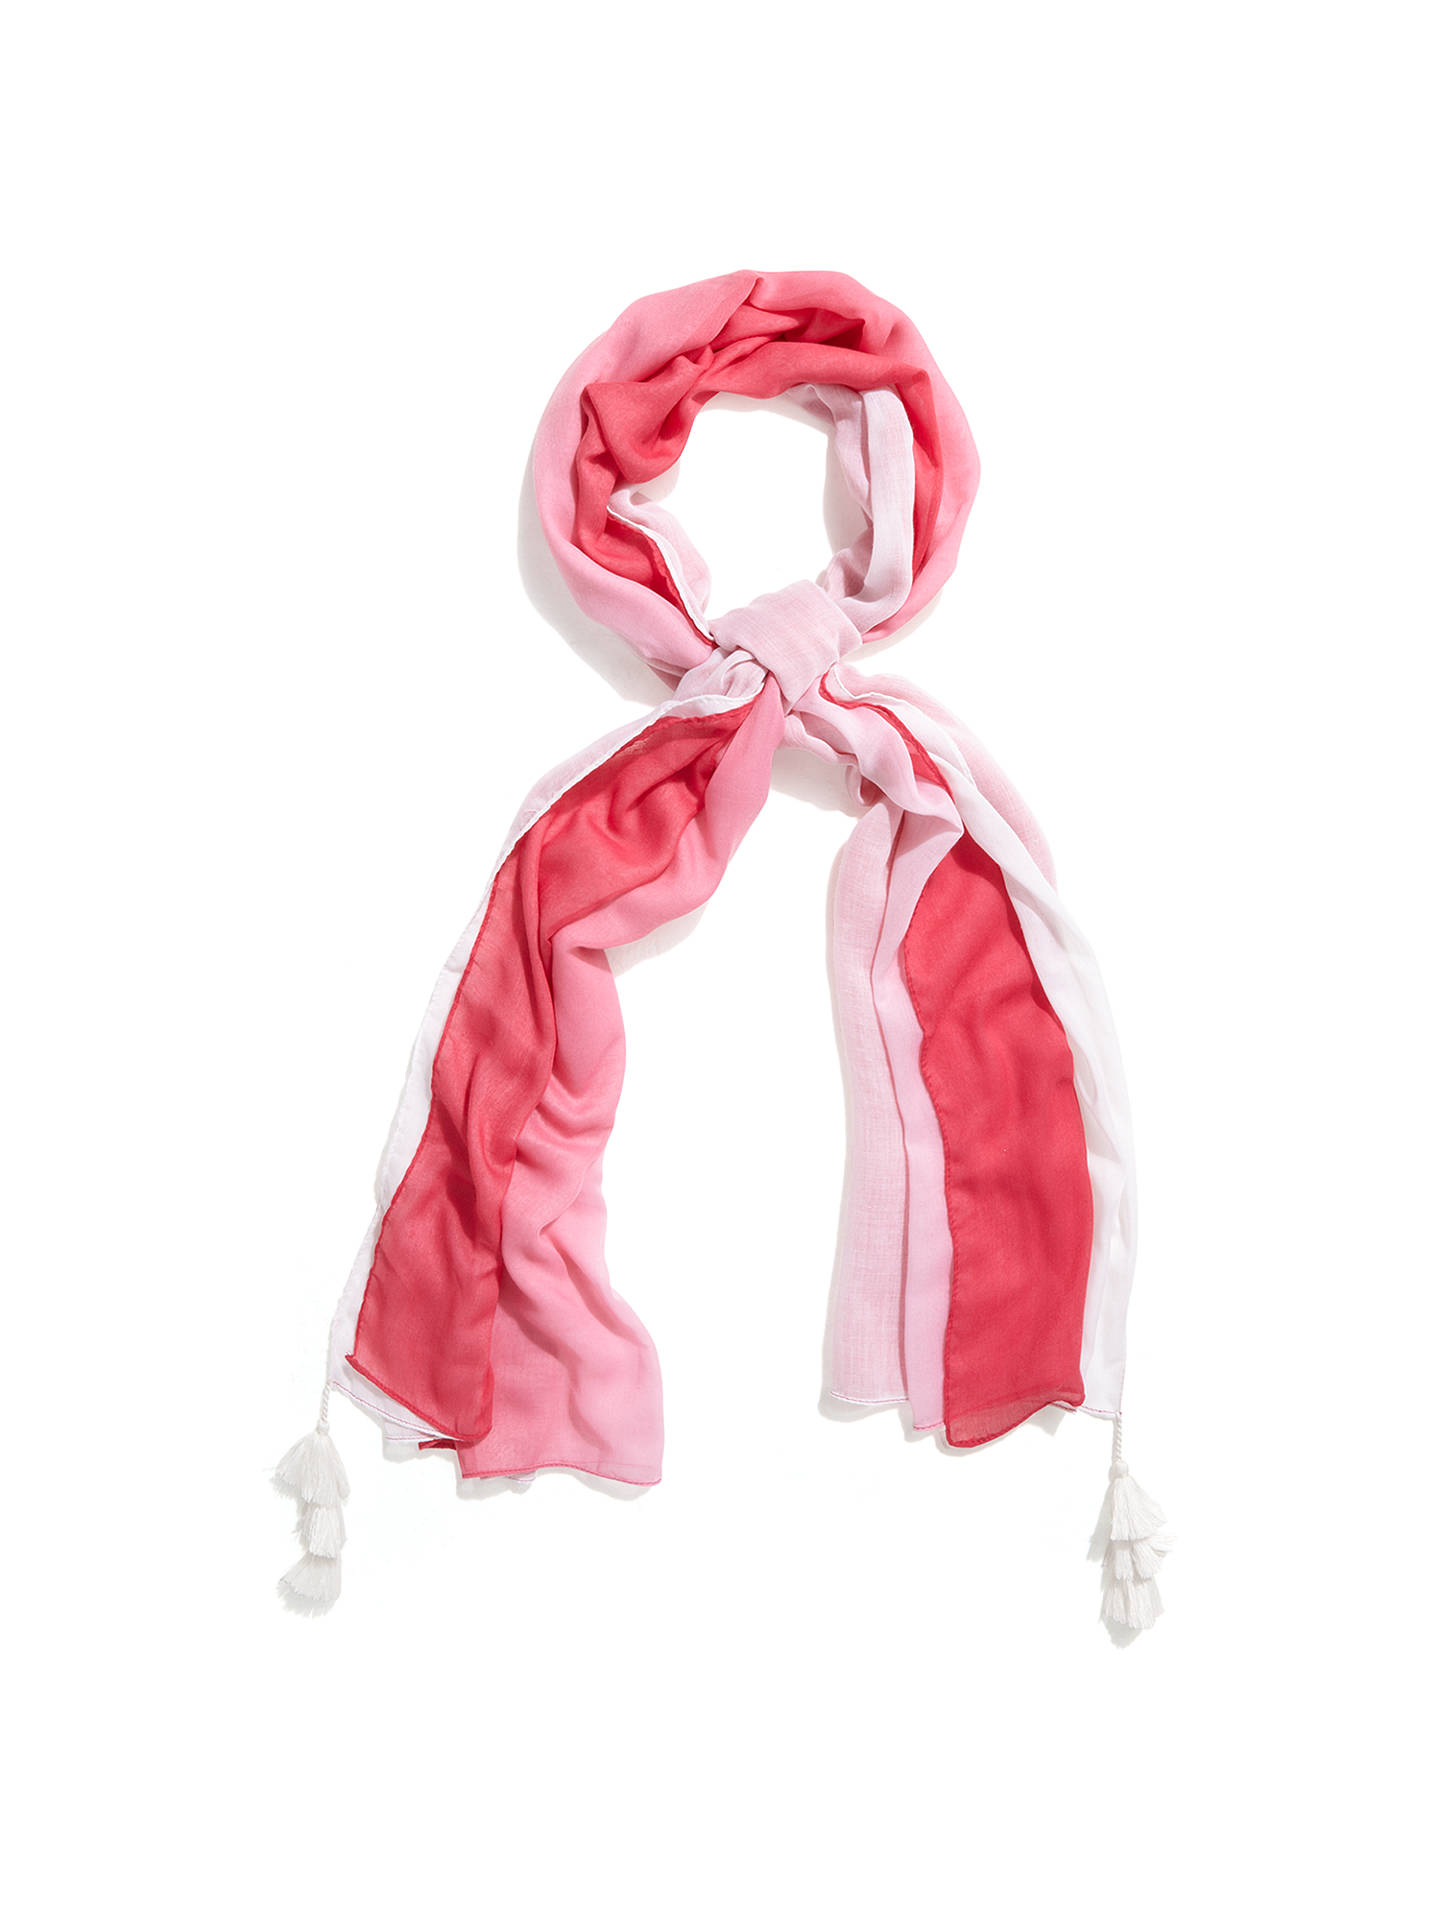 BuyPhase Eight Lulu Ombre Sarong, Pink/White Online at johnlewis.com